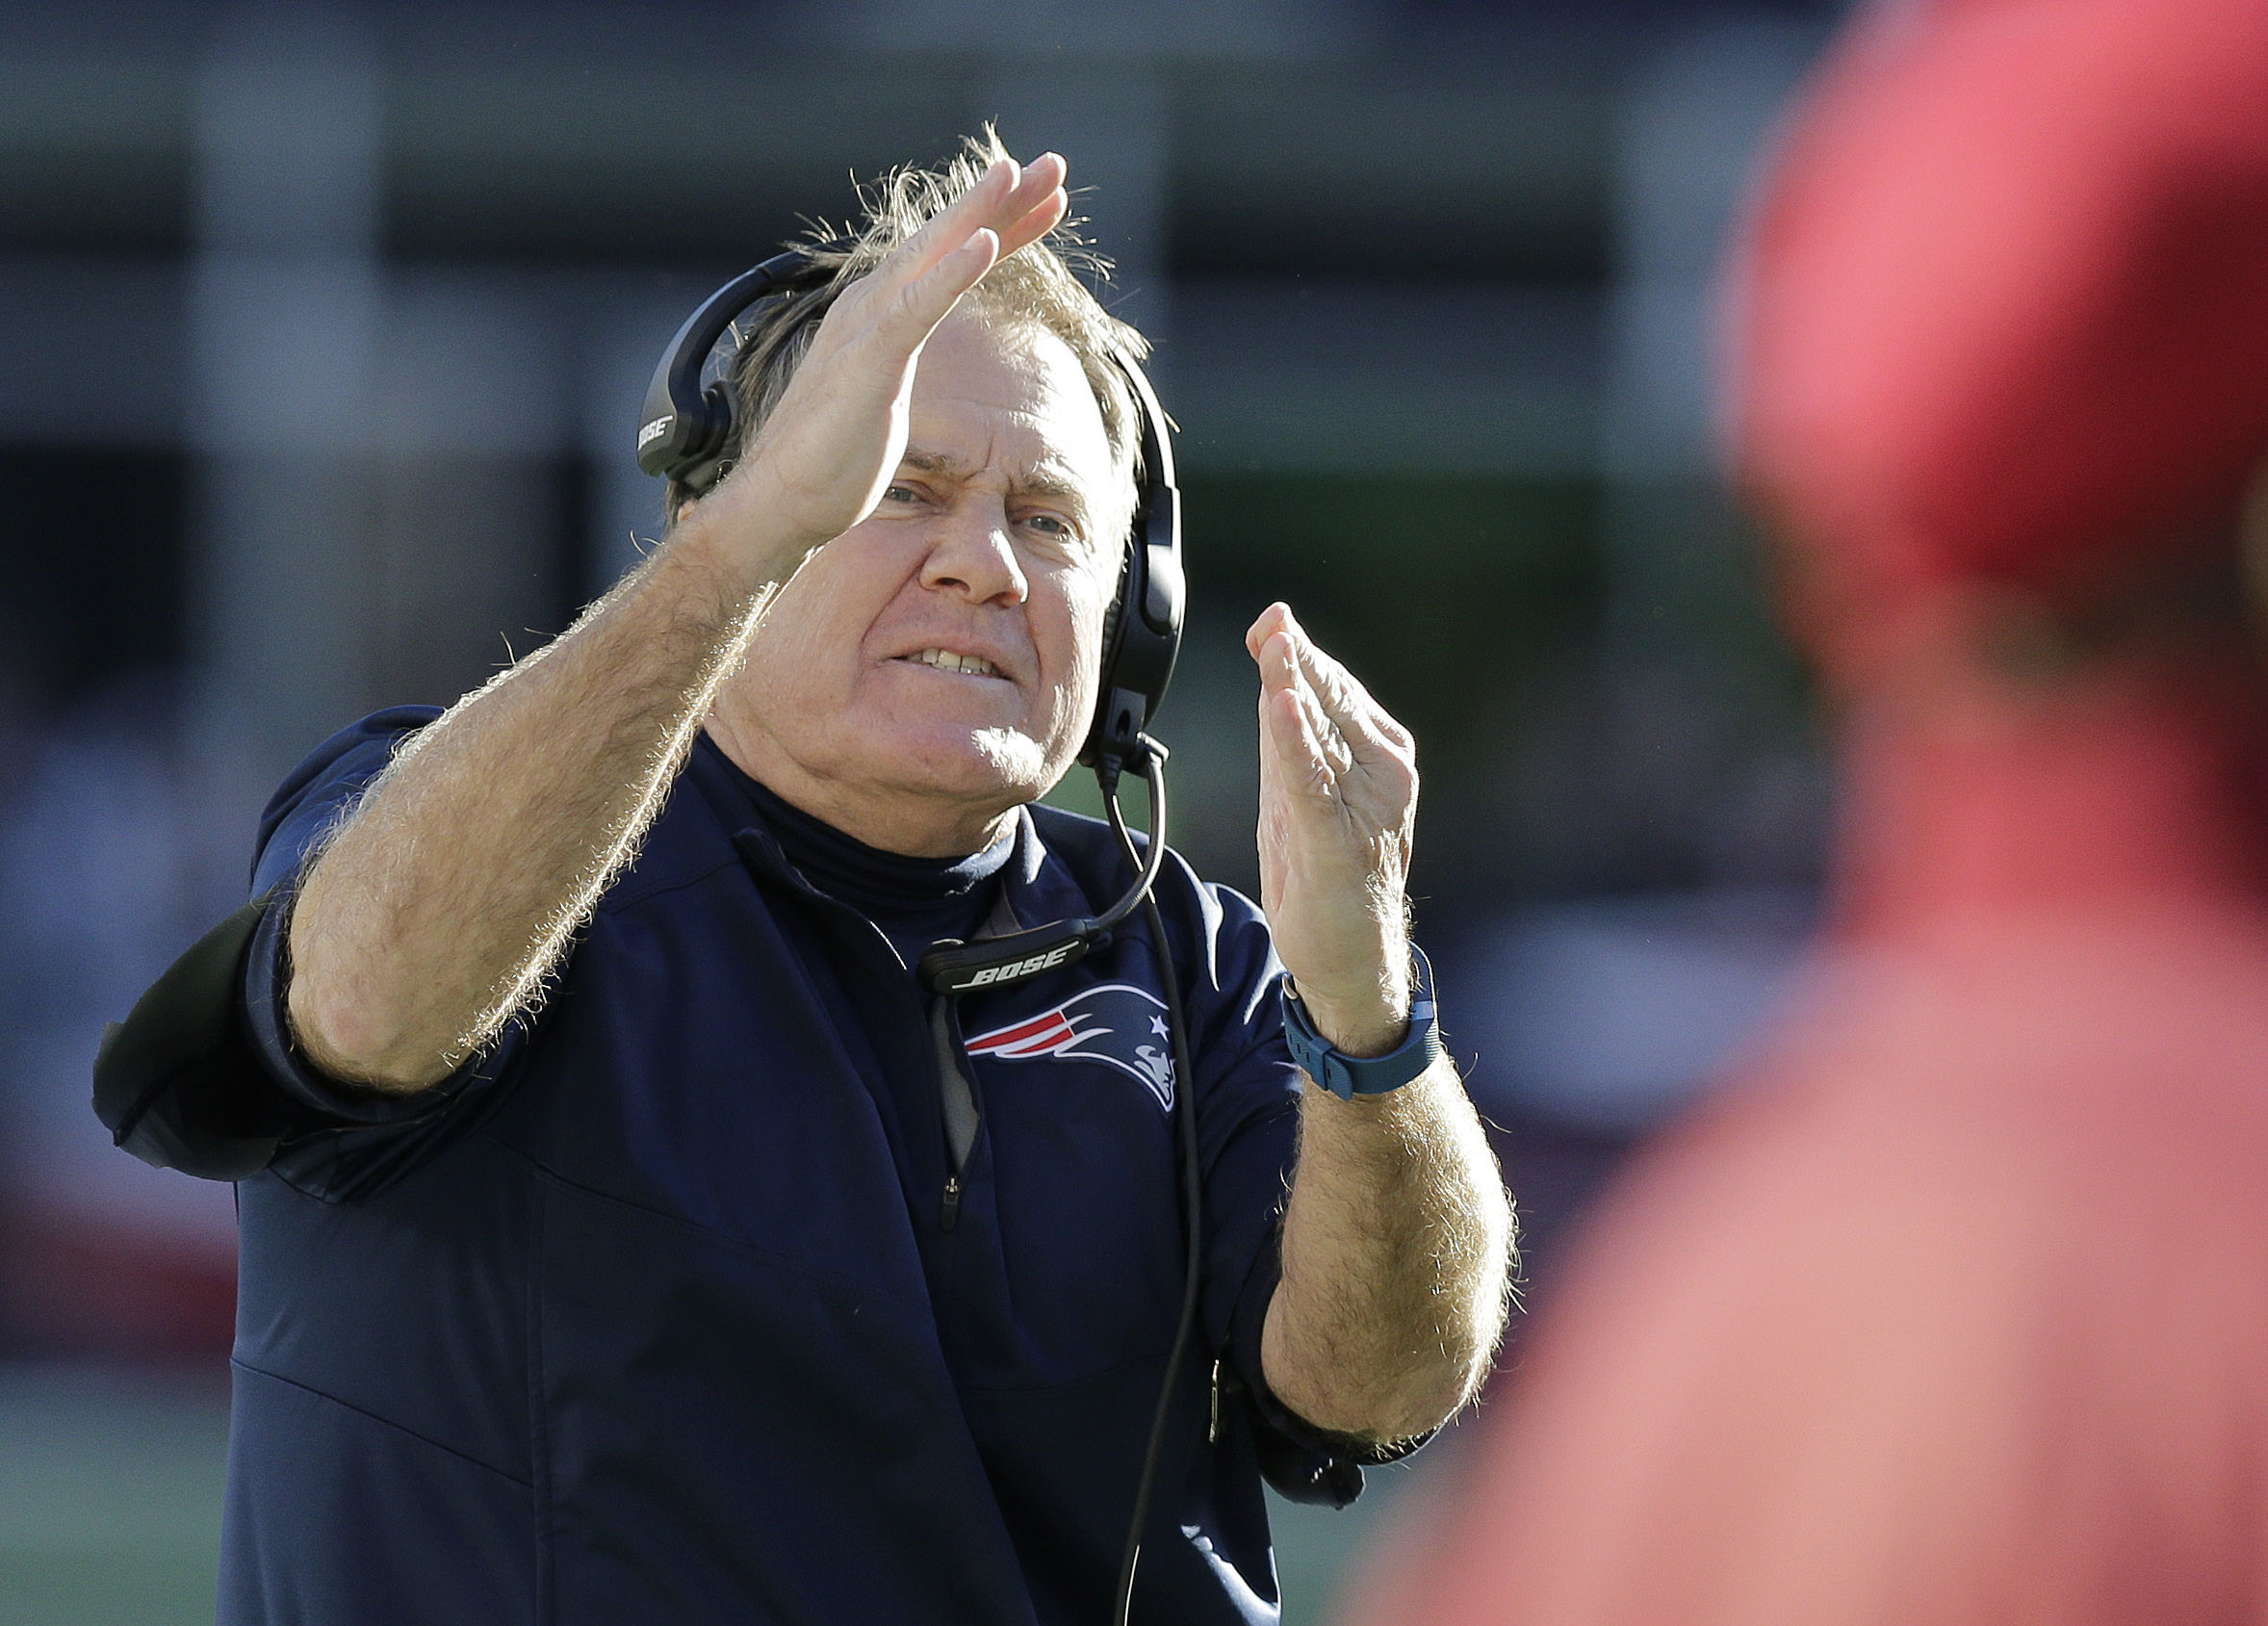 New England Patriots head coach Bill Belichick signals an official asking for a time out during the first half of an NFL football game against the Washington Redskins, Sunday, Nov. 8, 2015, in Foxborough, Mass. (AP Photo/Charles Krupa)